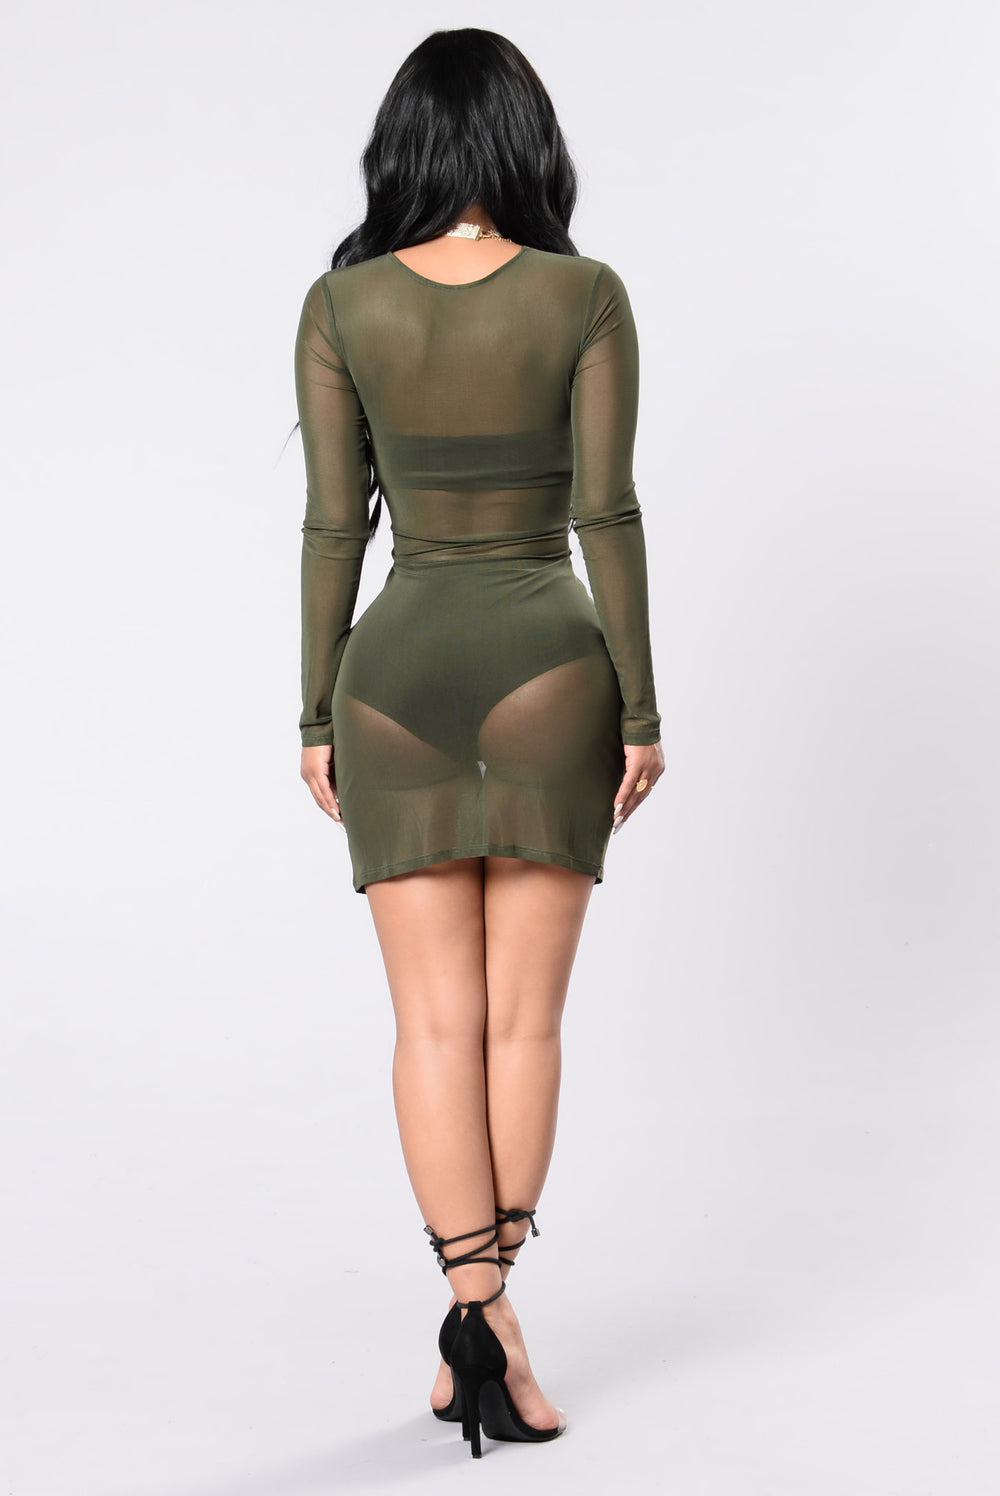 Sugar Coated Dress - Olive